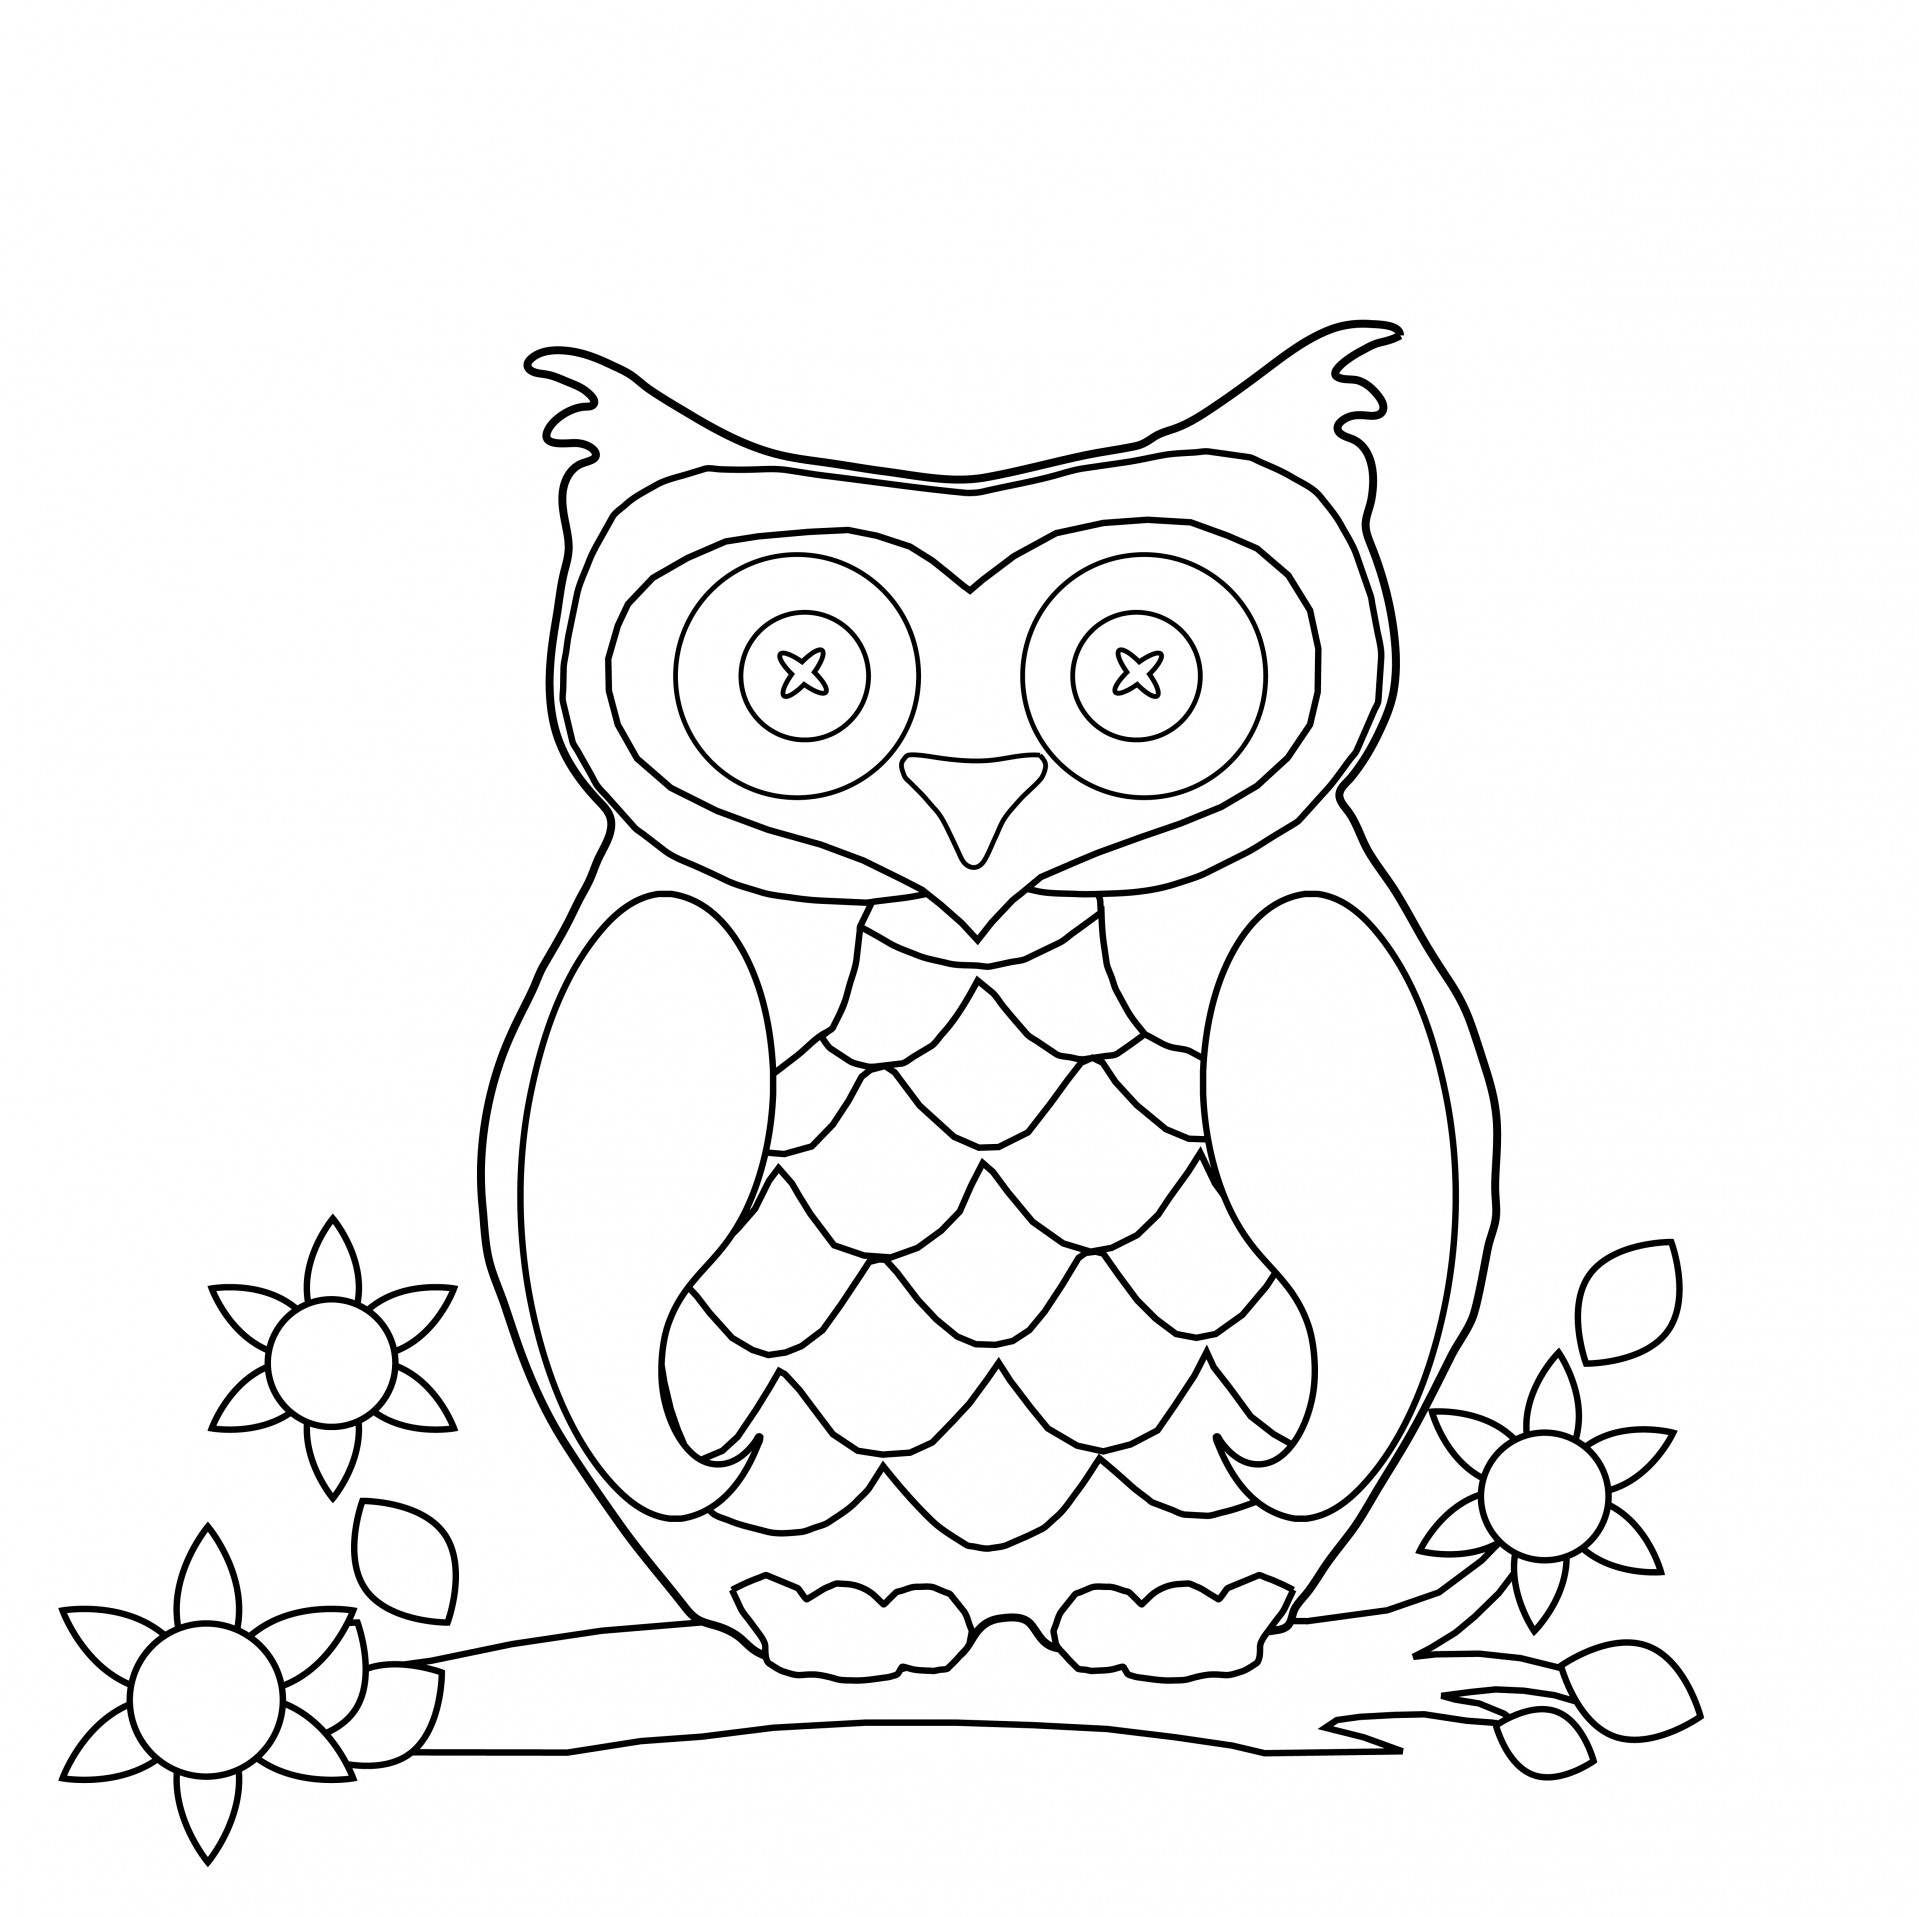 www coloring sheets disney coloring pages best coloring pages for kids coloring sheets www